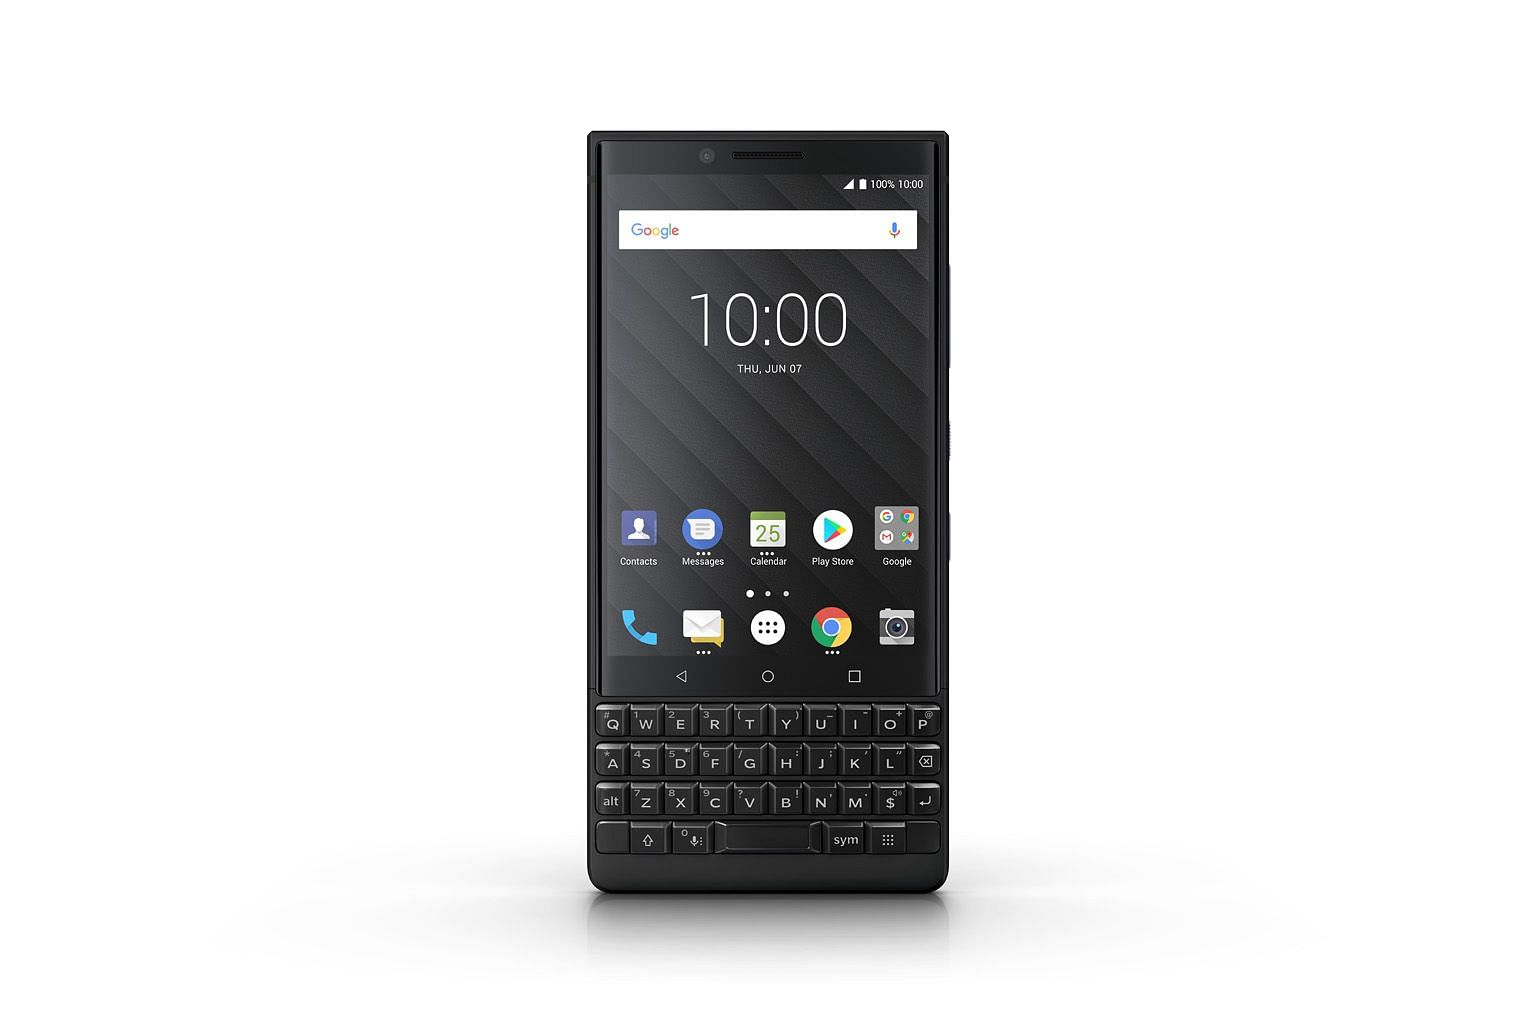 The Key2 offers good reasons for BlackBerry fans to upgrade.